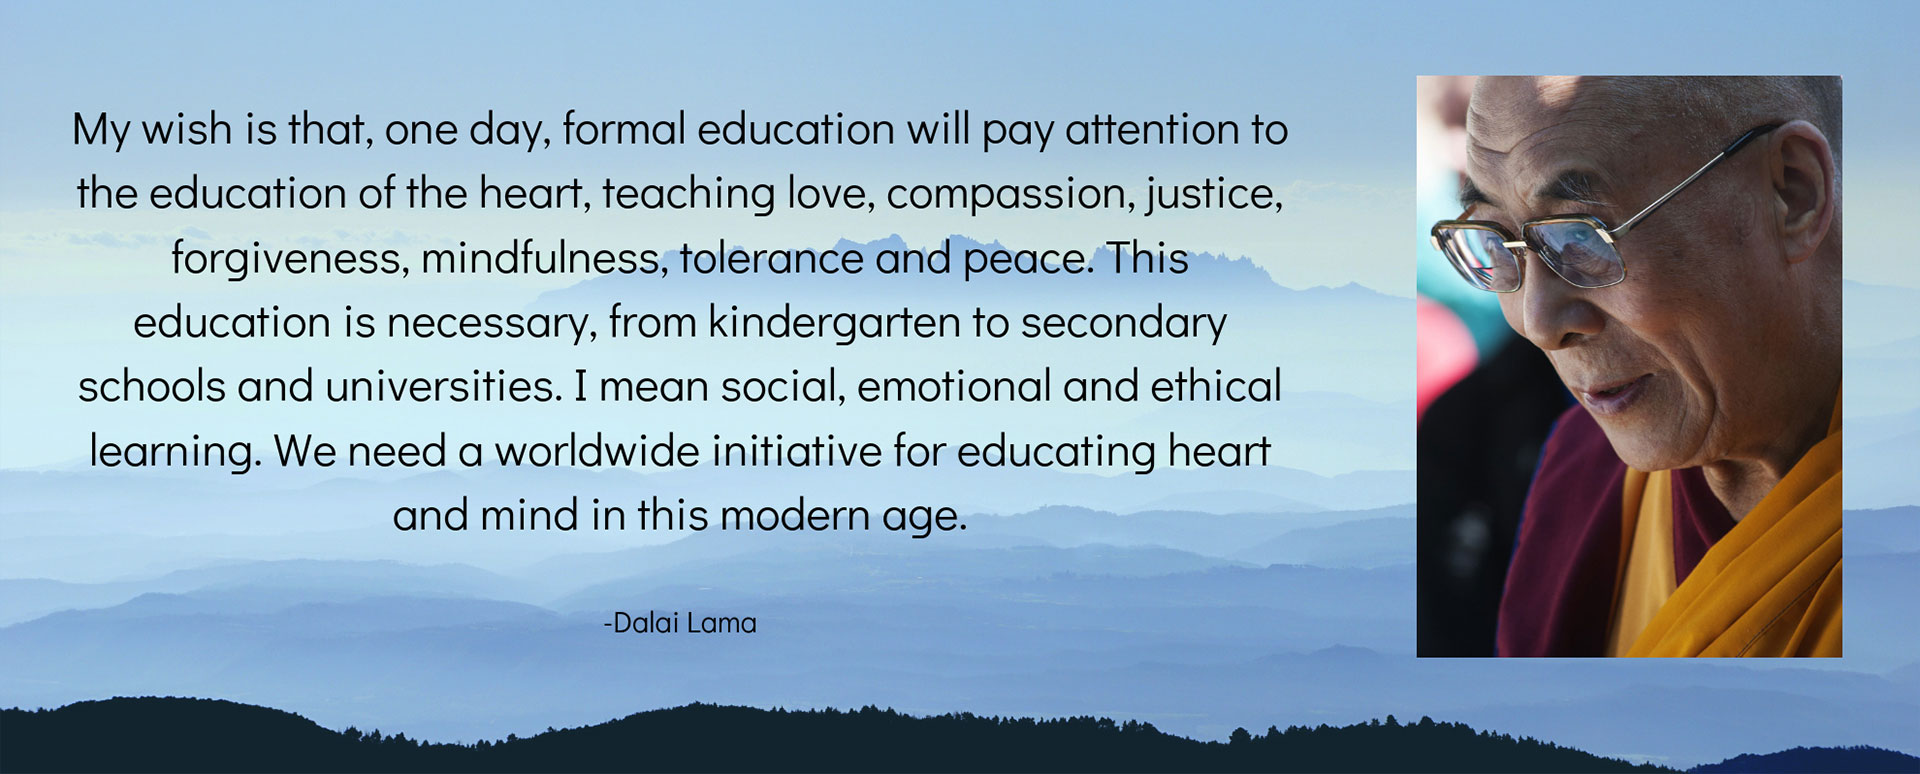 Dalai Lama | HeartFirst Education